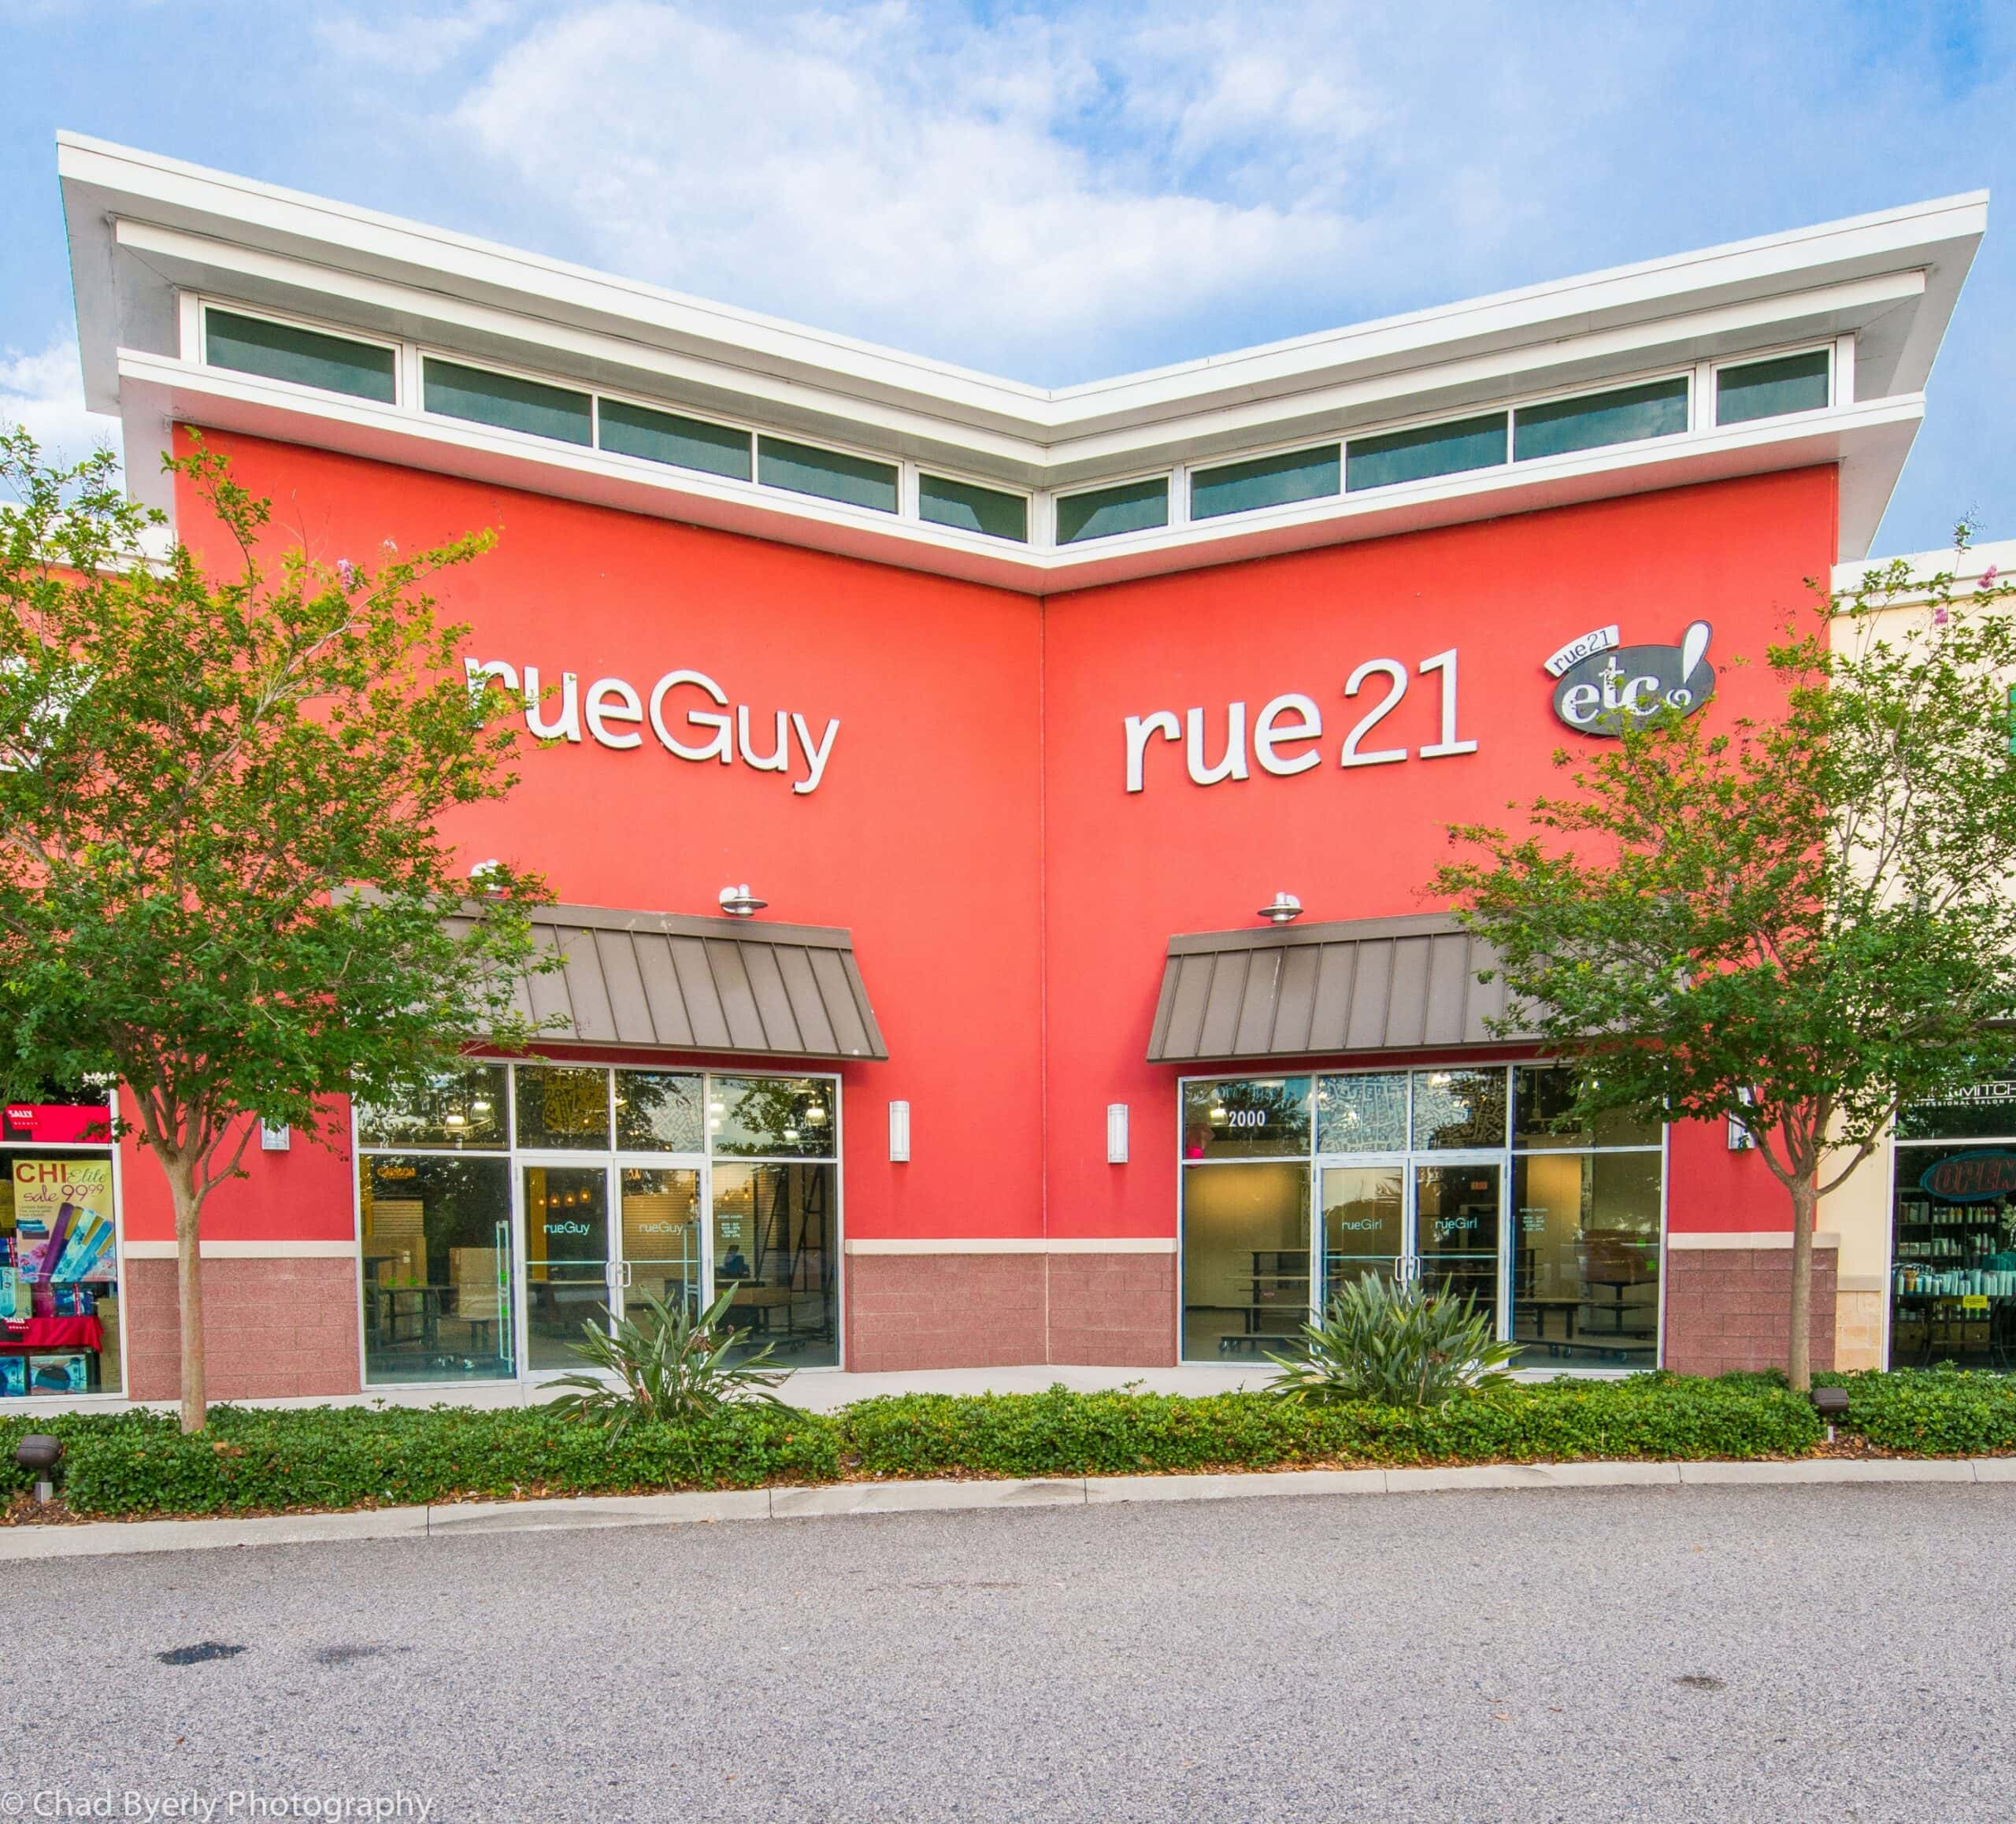 Entrance at rue21 Posner Commons showing the rueGuy and rue21 exterior wall signage.